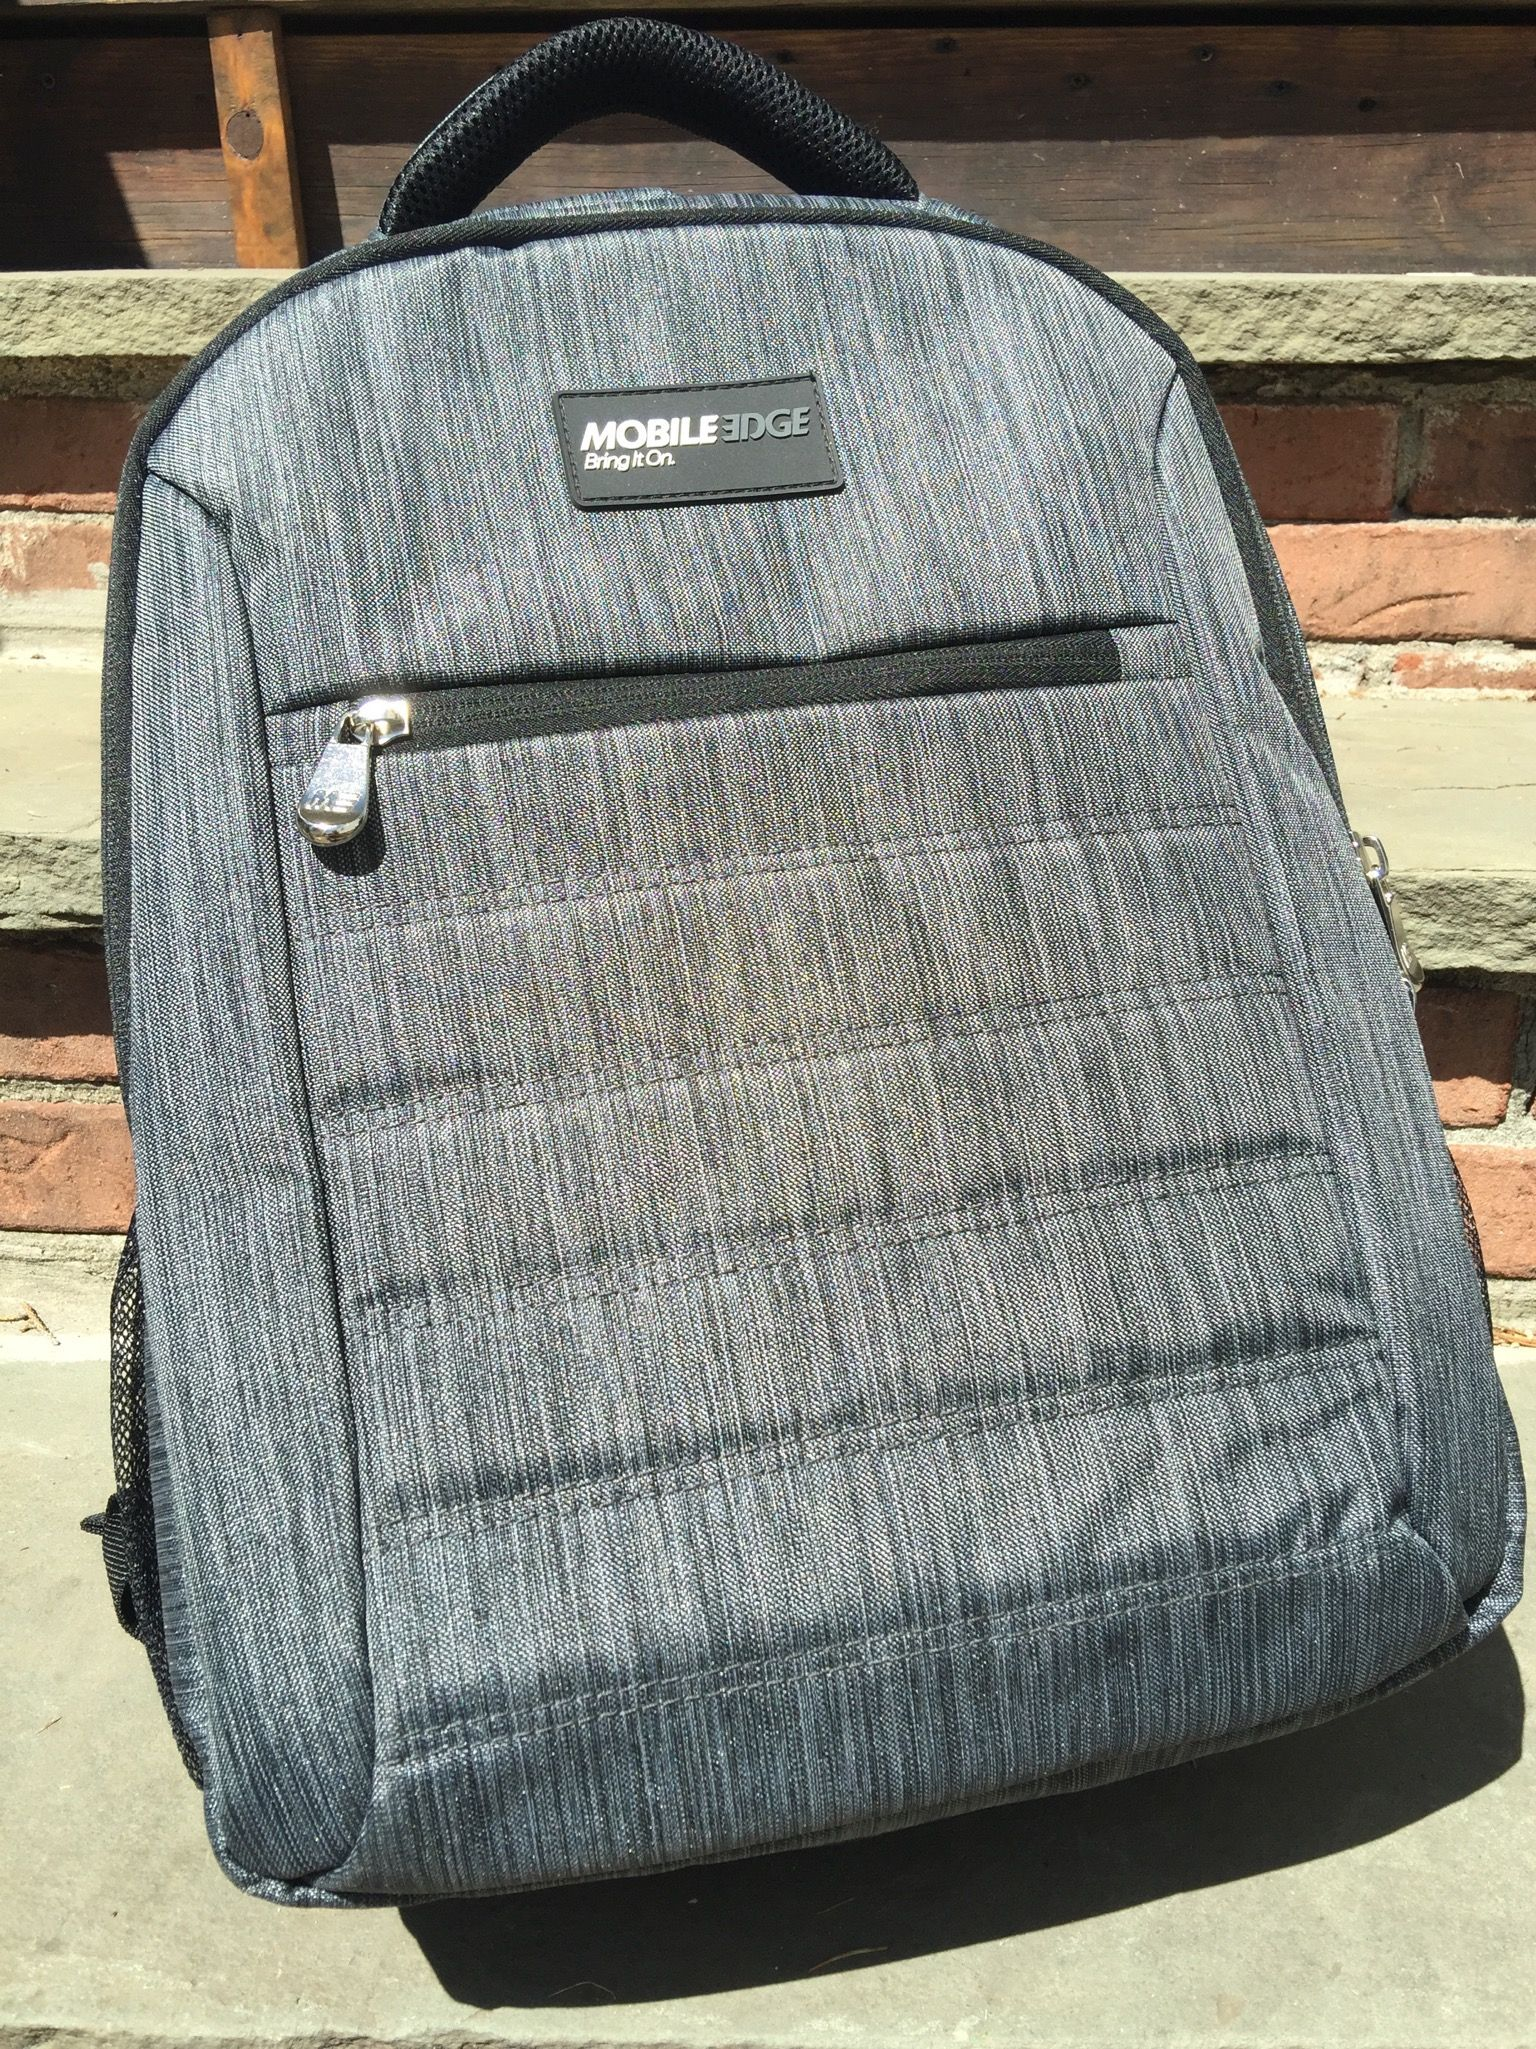 We have been on an extensive search for a solid backpack for a corporate client.  Many decisions go into finding the right backpack - price, style, color etc. We wanted to post this particular backpack because out of a couple dozen we considered, this one fit our particular customers needs very well. We have also had an opportunity to put this bag through some real world tests and this one really came out on top. Take a look at our Youtube video unbox of this great backpack.